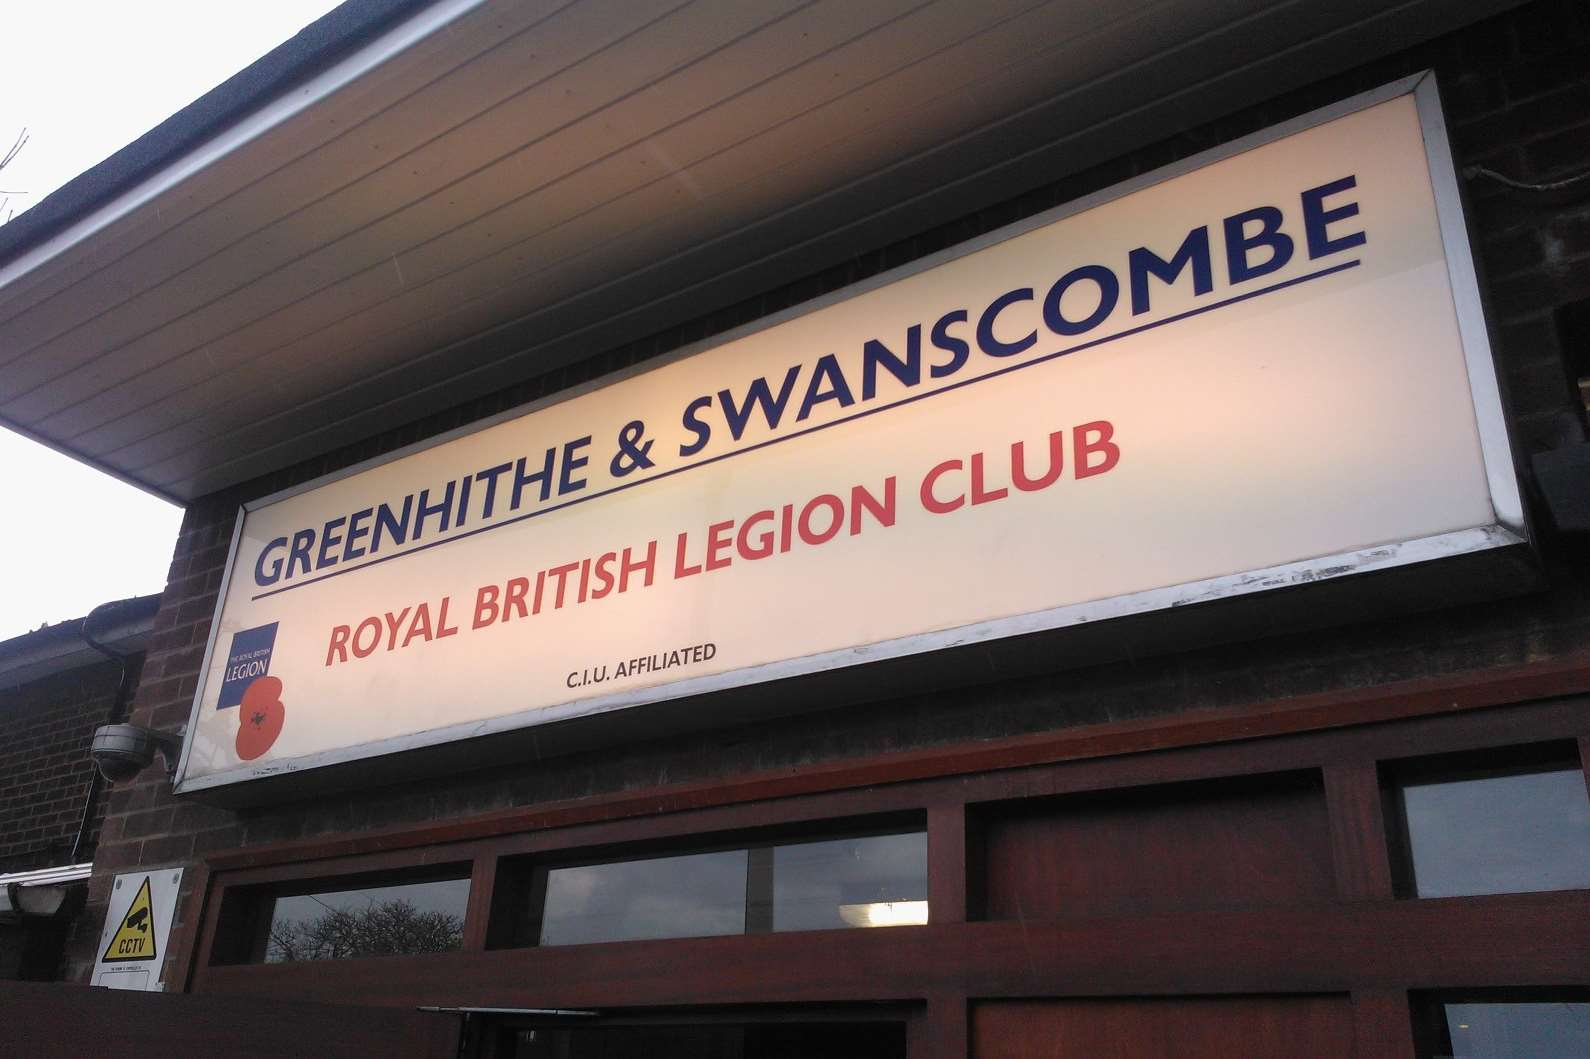 The first of the second round of London Paramount exhibitions was held here, at Greenhithe and Swanscombe Royal British Legion Club